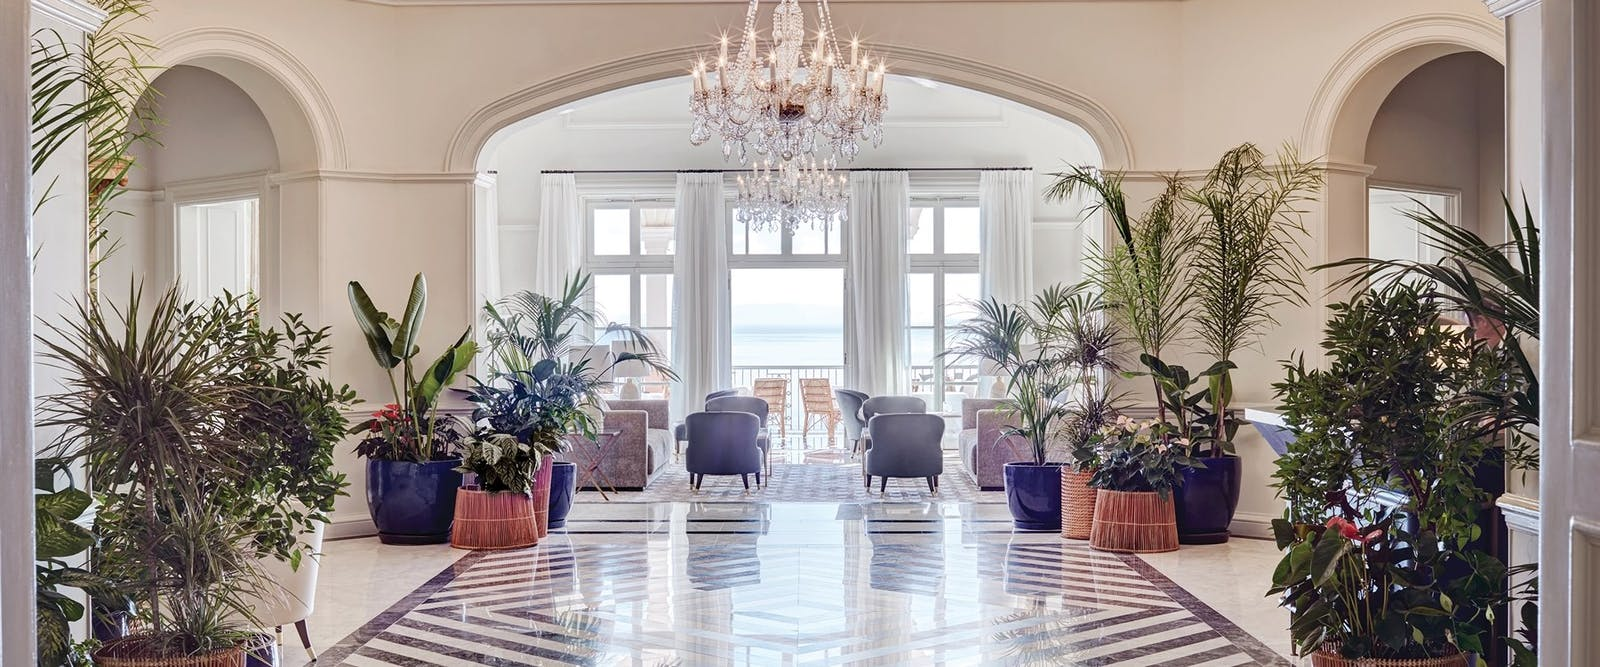 The Lobby at Reid's Palace, A Belmond Hotel, Madeira, Portugal